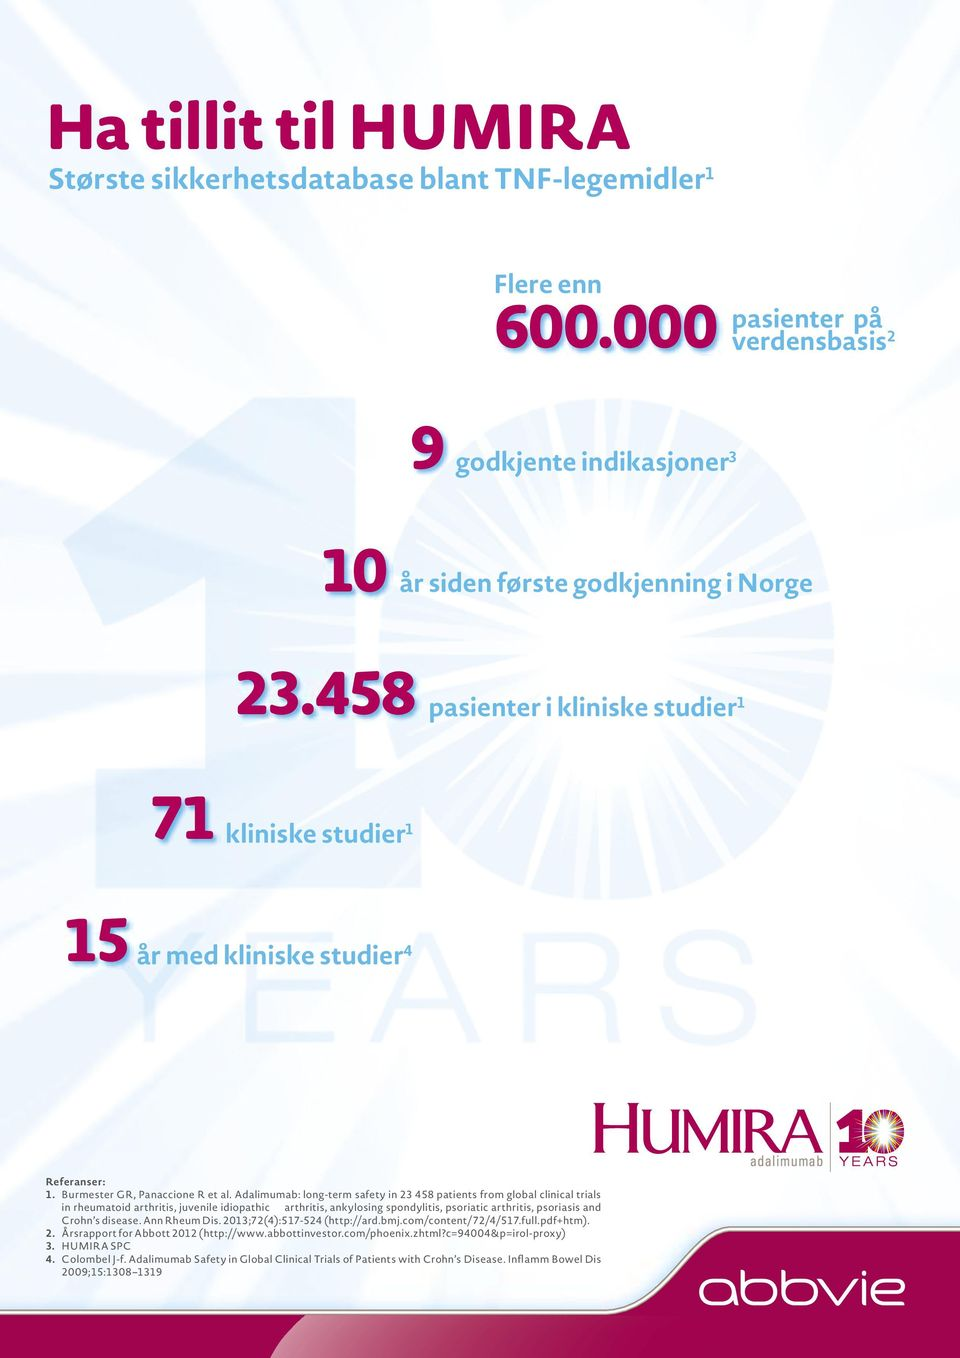 Adalimumab: long-term safety in 23 458 patients from global clinical trials in rheumatoid arthritis, juvenile idiopathic arthritis, ankylosing spondylitis, psoriatic arthritis, psoriasis and Crohn s